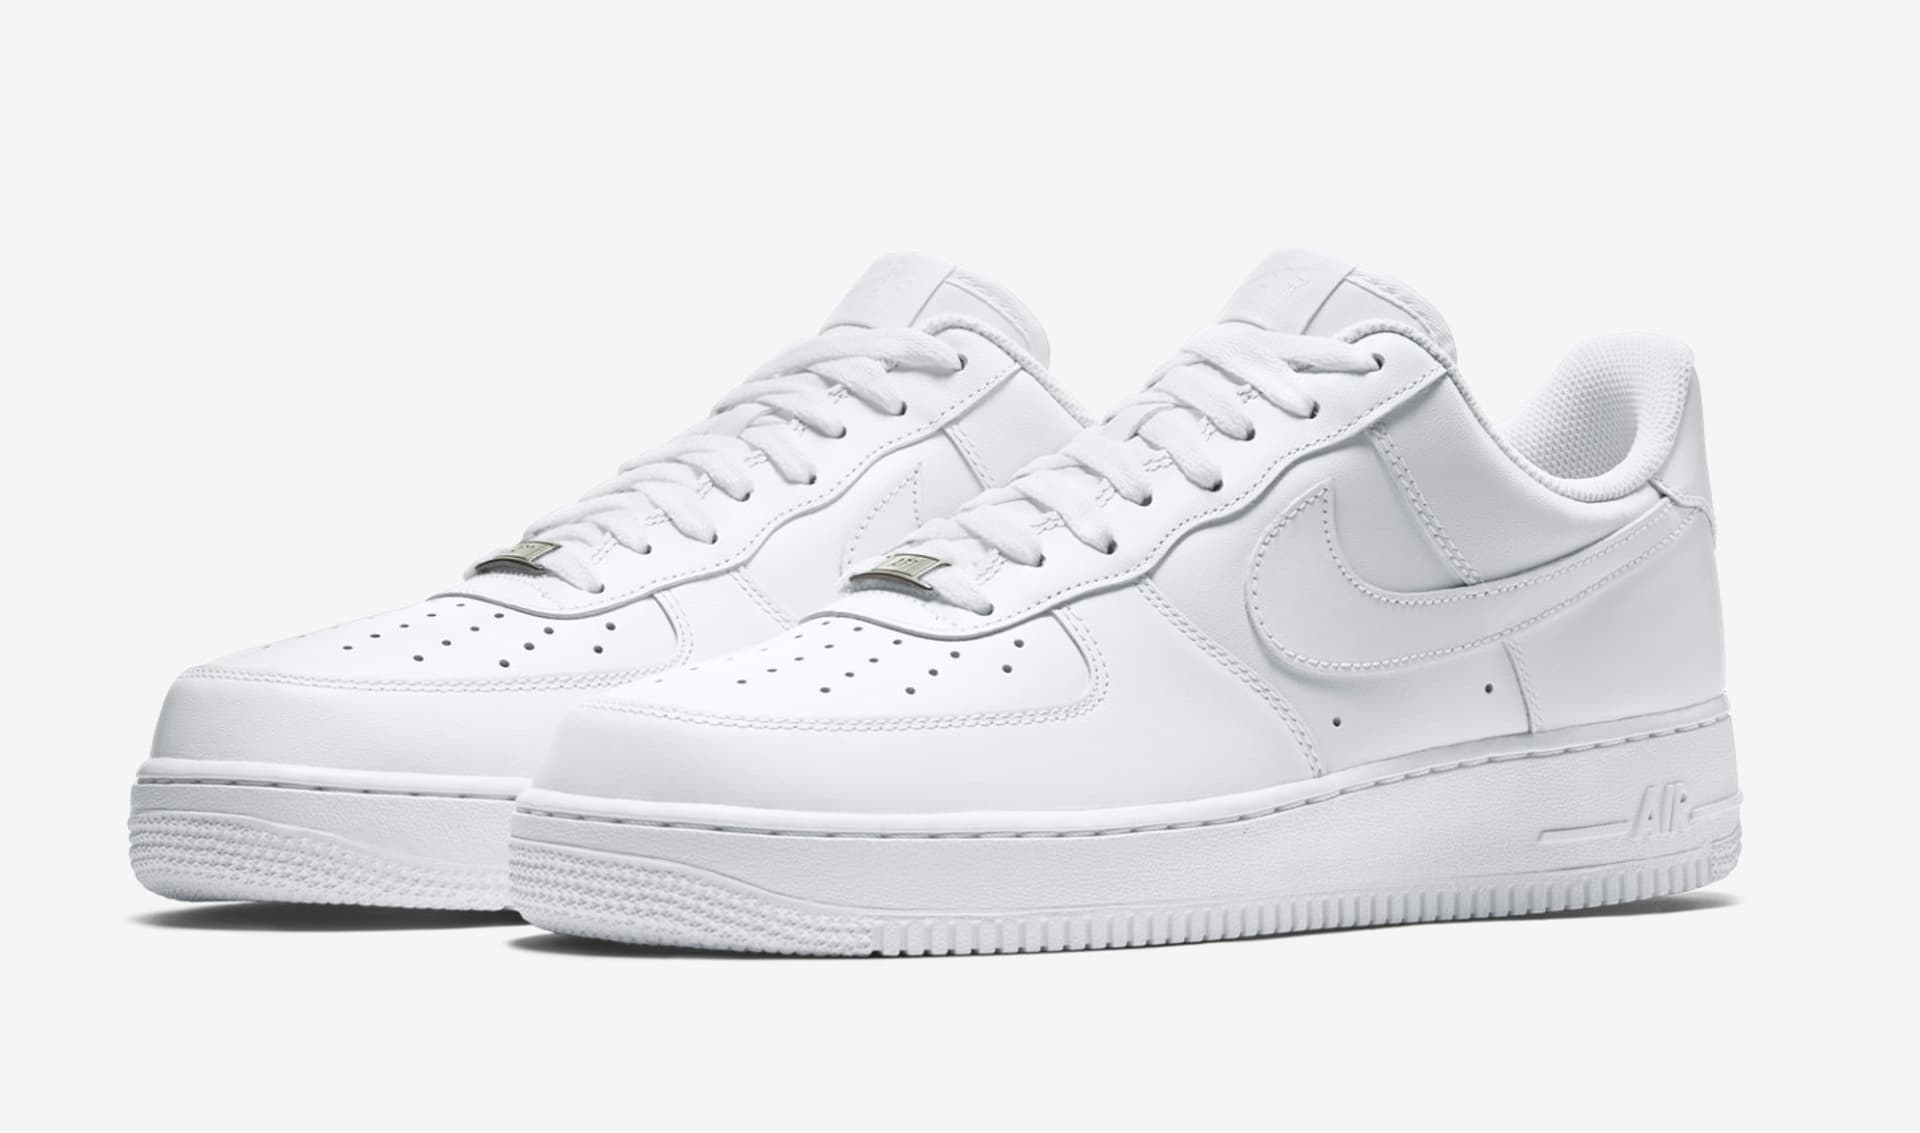 low priced 9199d 1f45f Nike Air Force 1: History Behind The Perfect White Sneaker ...